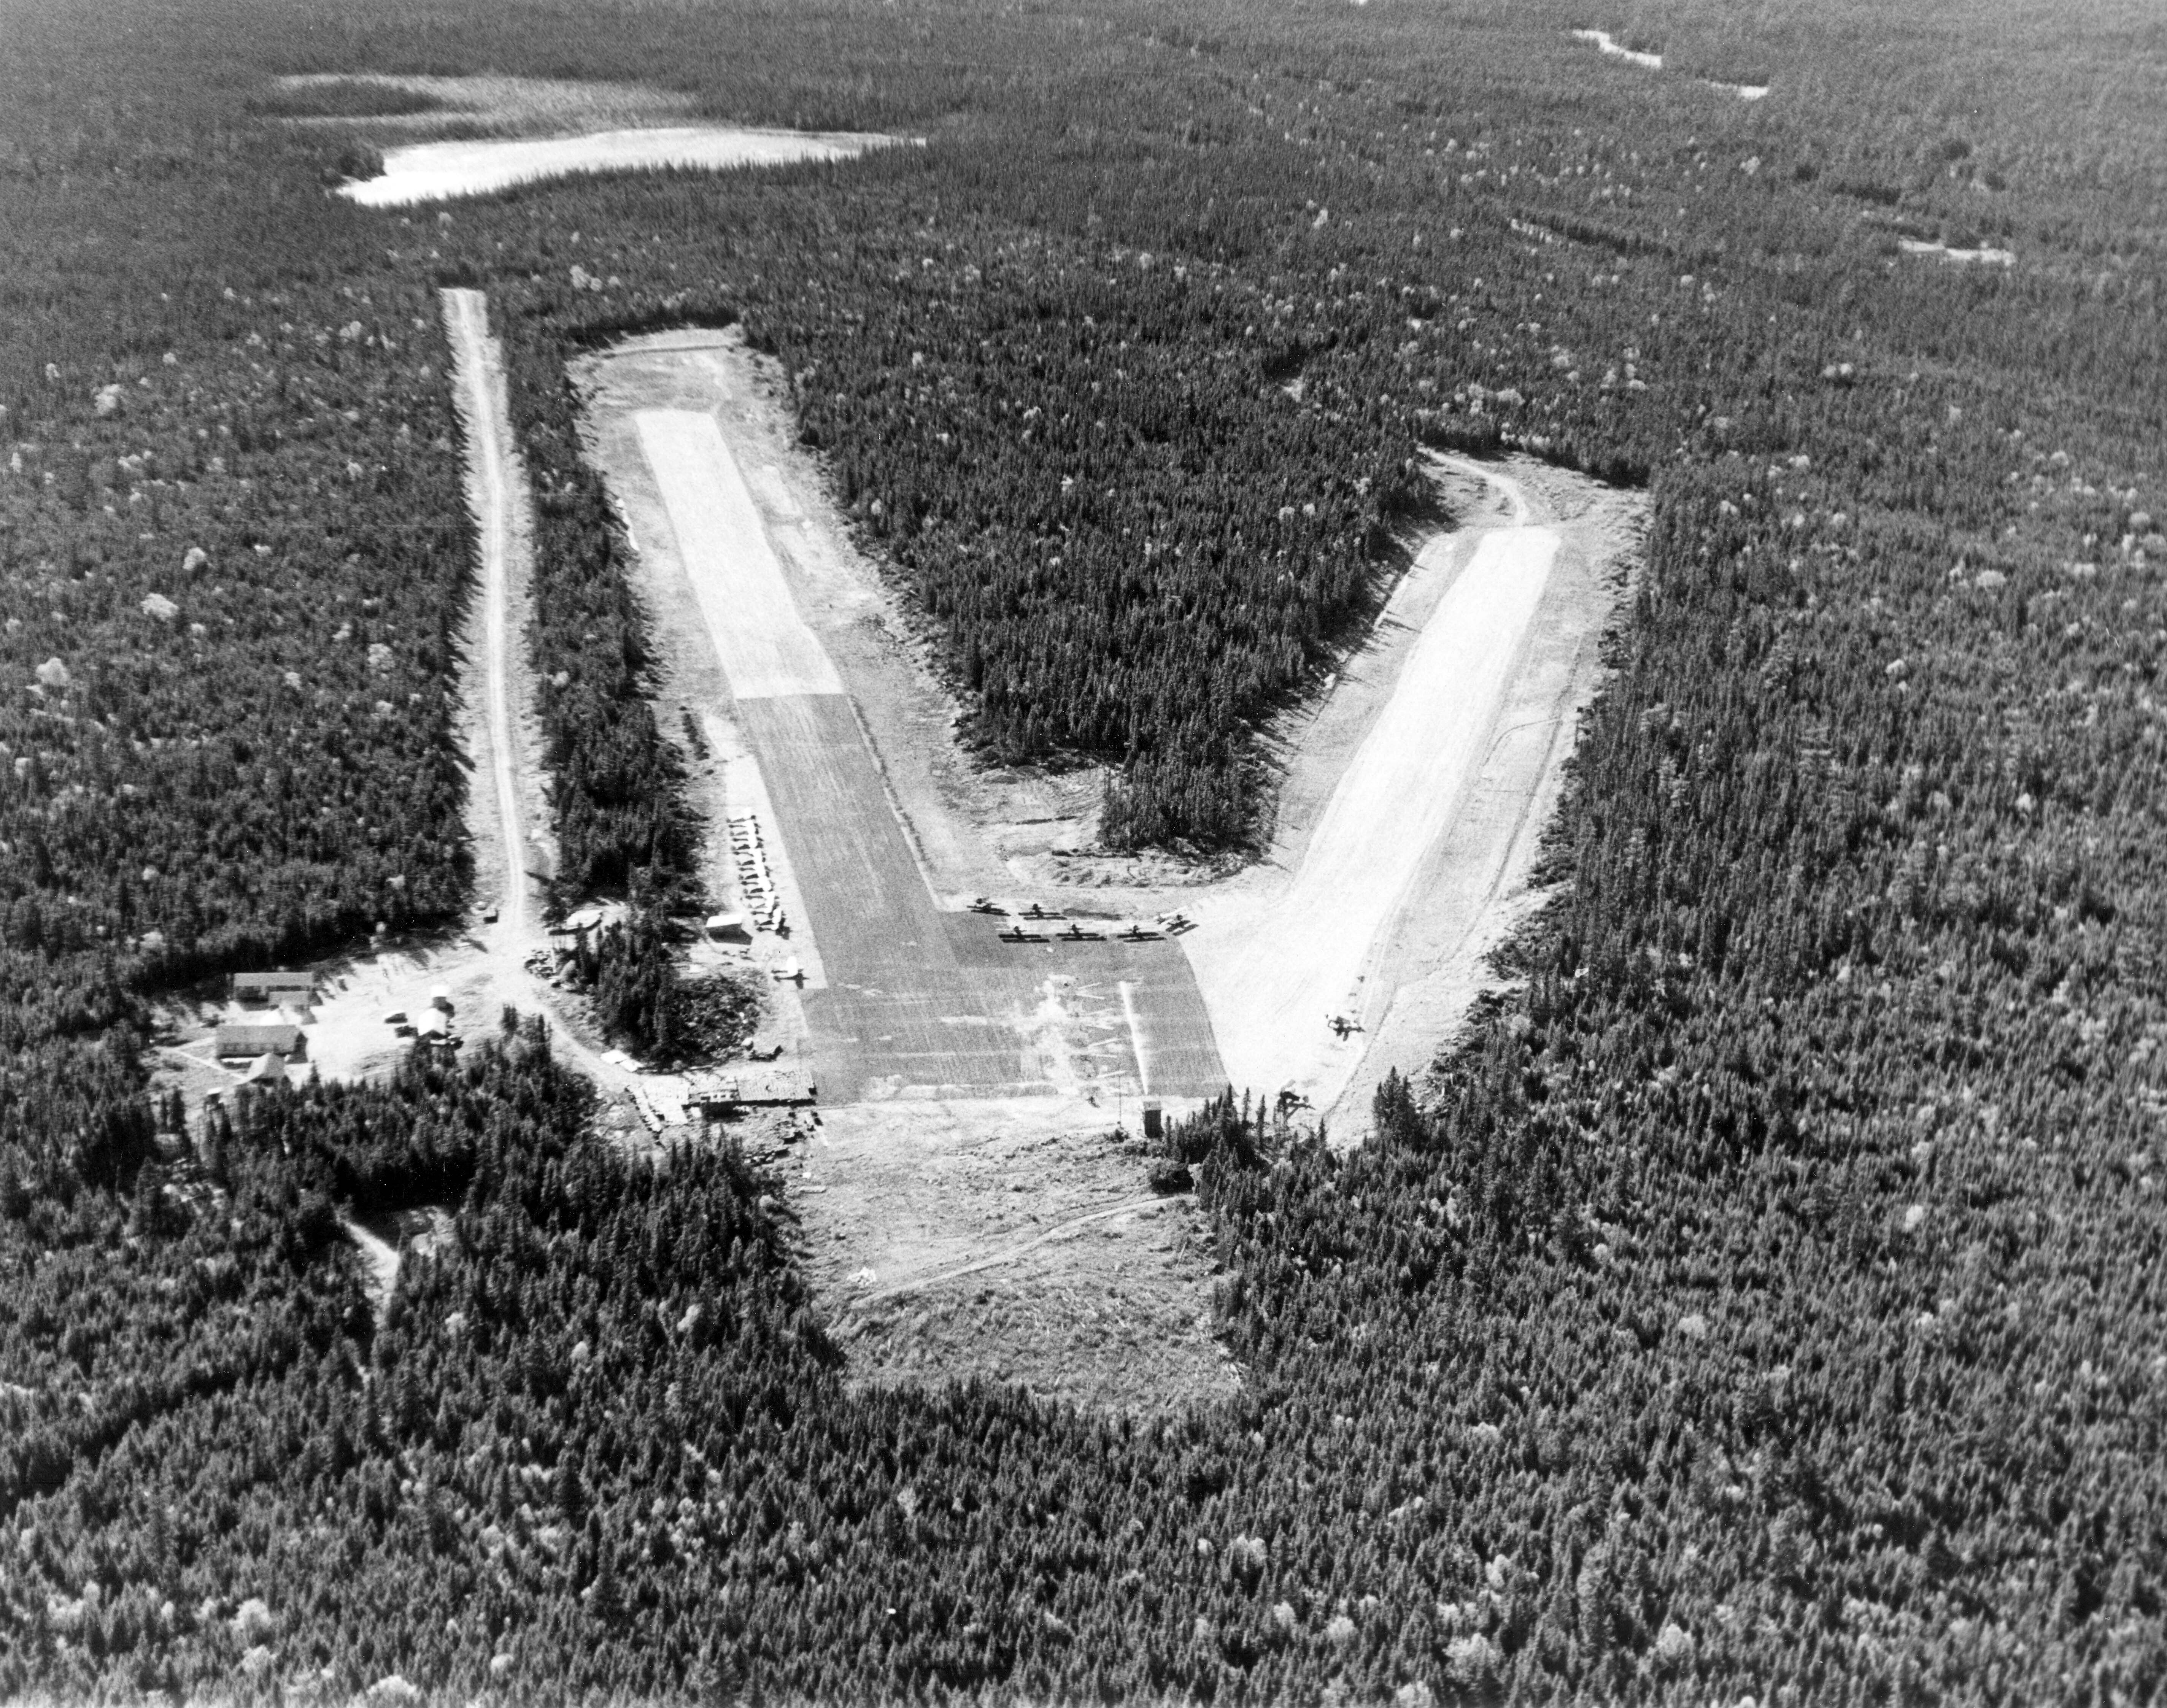 Renous airstrip, NB, 1950s. Canada Dept. Agriculture photo #40650-12.